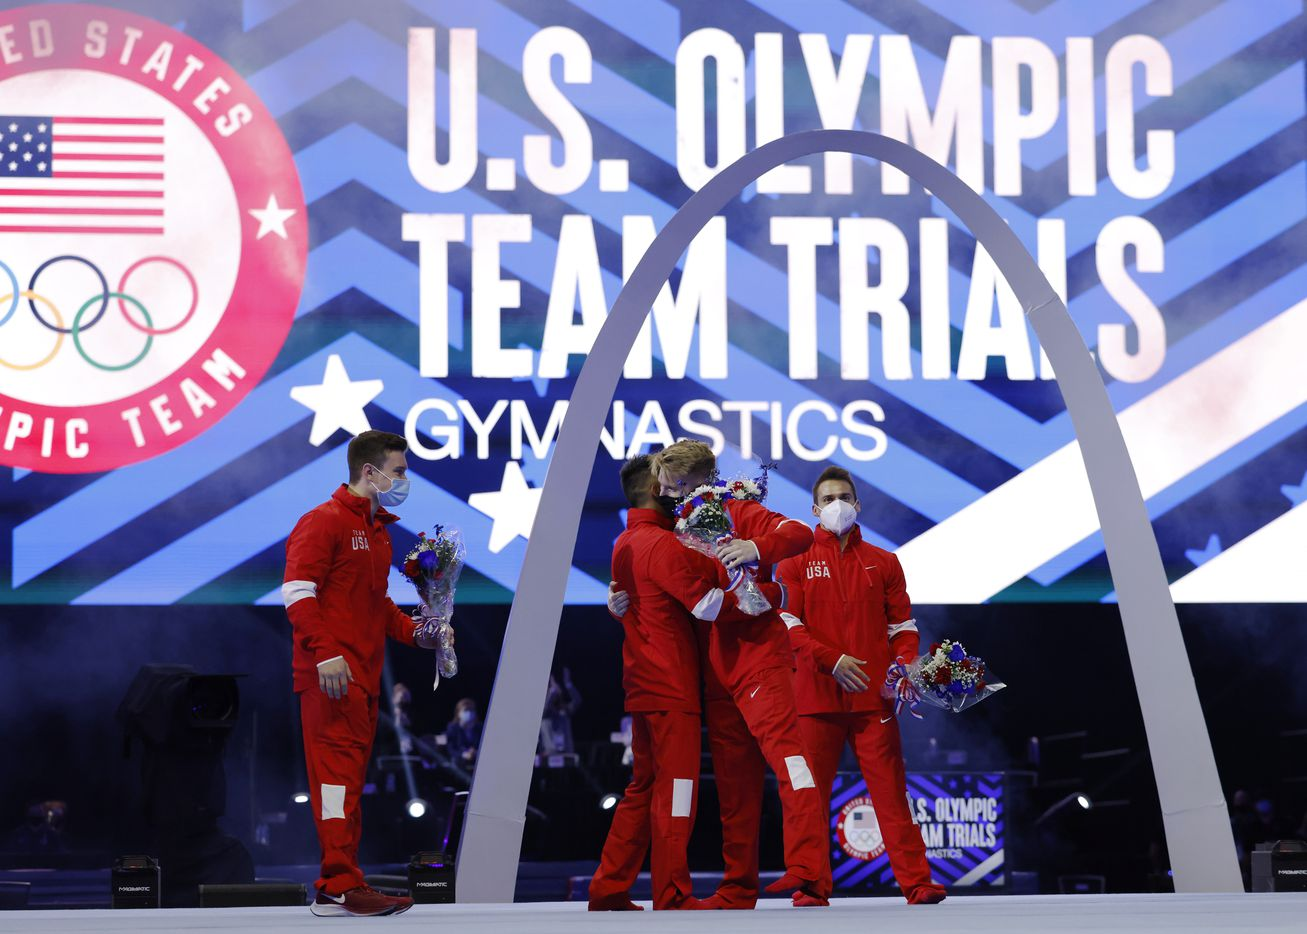 Yul Moldauer (center left) hugs Shane Wiskus (center right) as Brody Malone (far left) and Sam Mikulak (far right) are all introduced as the U.S. Olympic men's gymnastics team during day 2 of the men's 2021 U.S. Olympic Trials at America's Center on Saturday, June 26, 2021 in St Louis, Missouri.(Vernon Bryant/The Dallas Morning News)